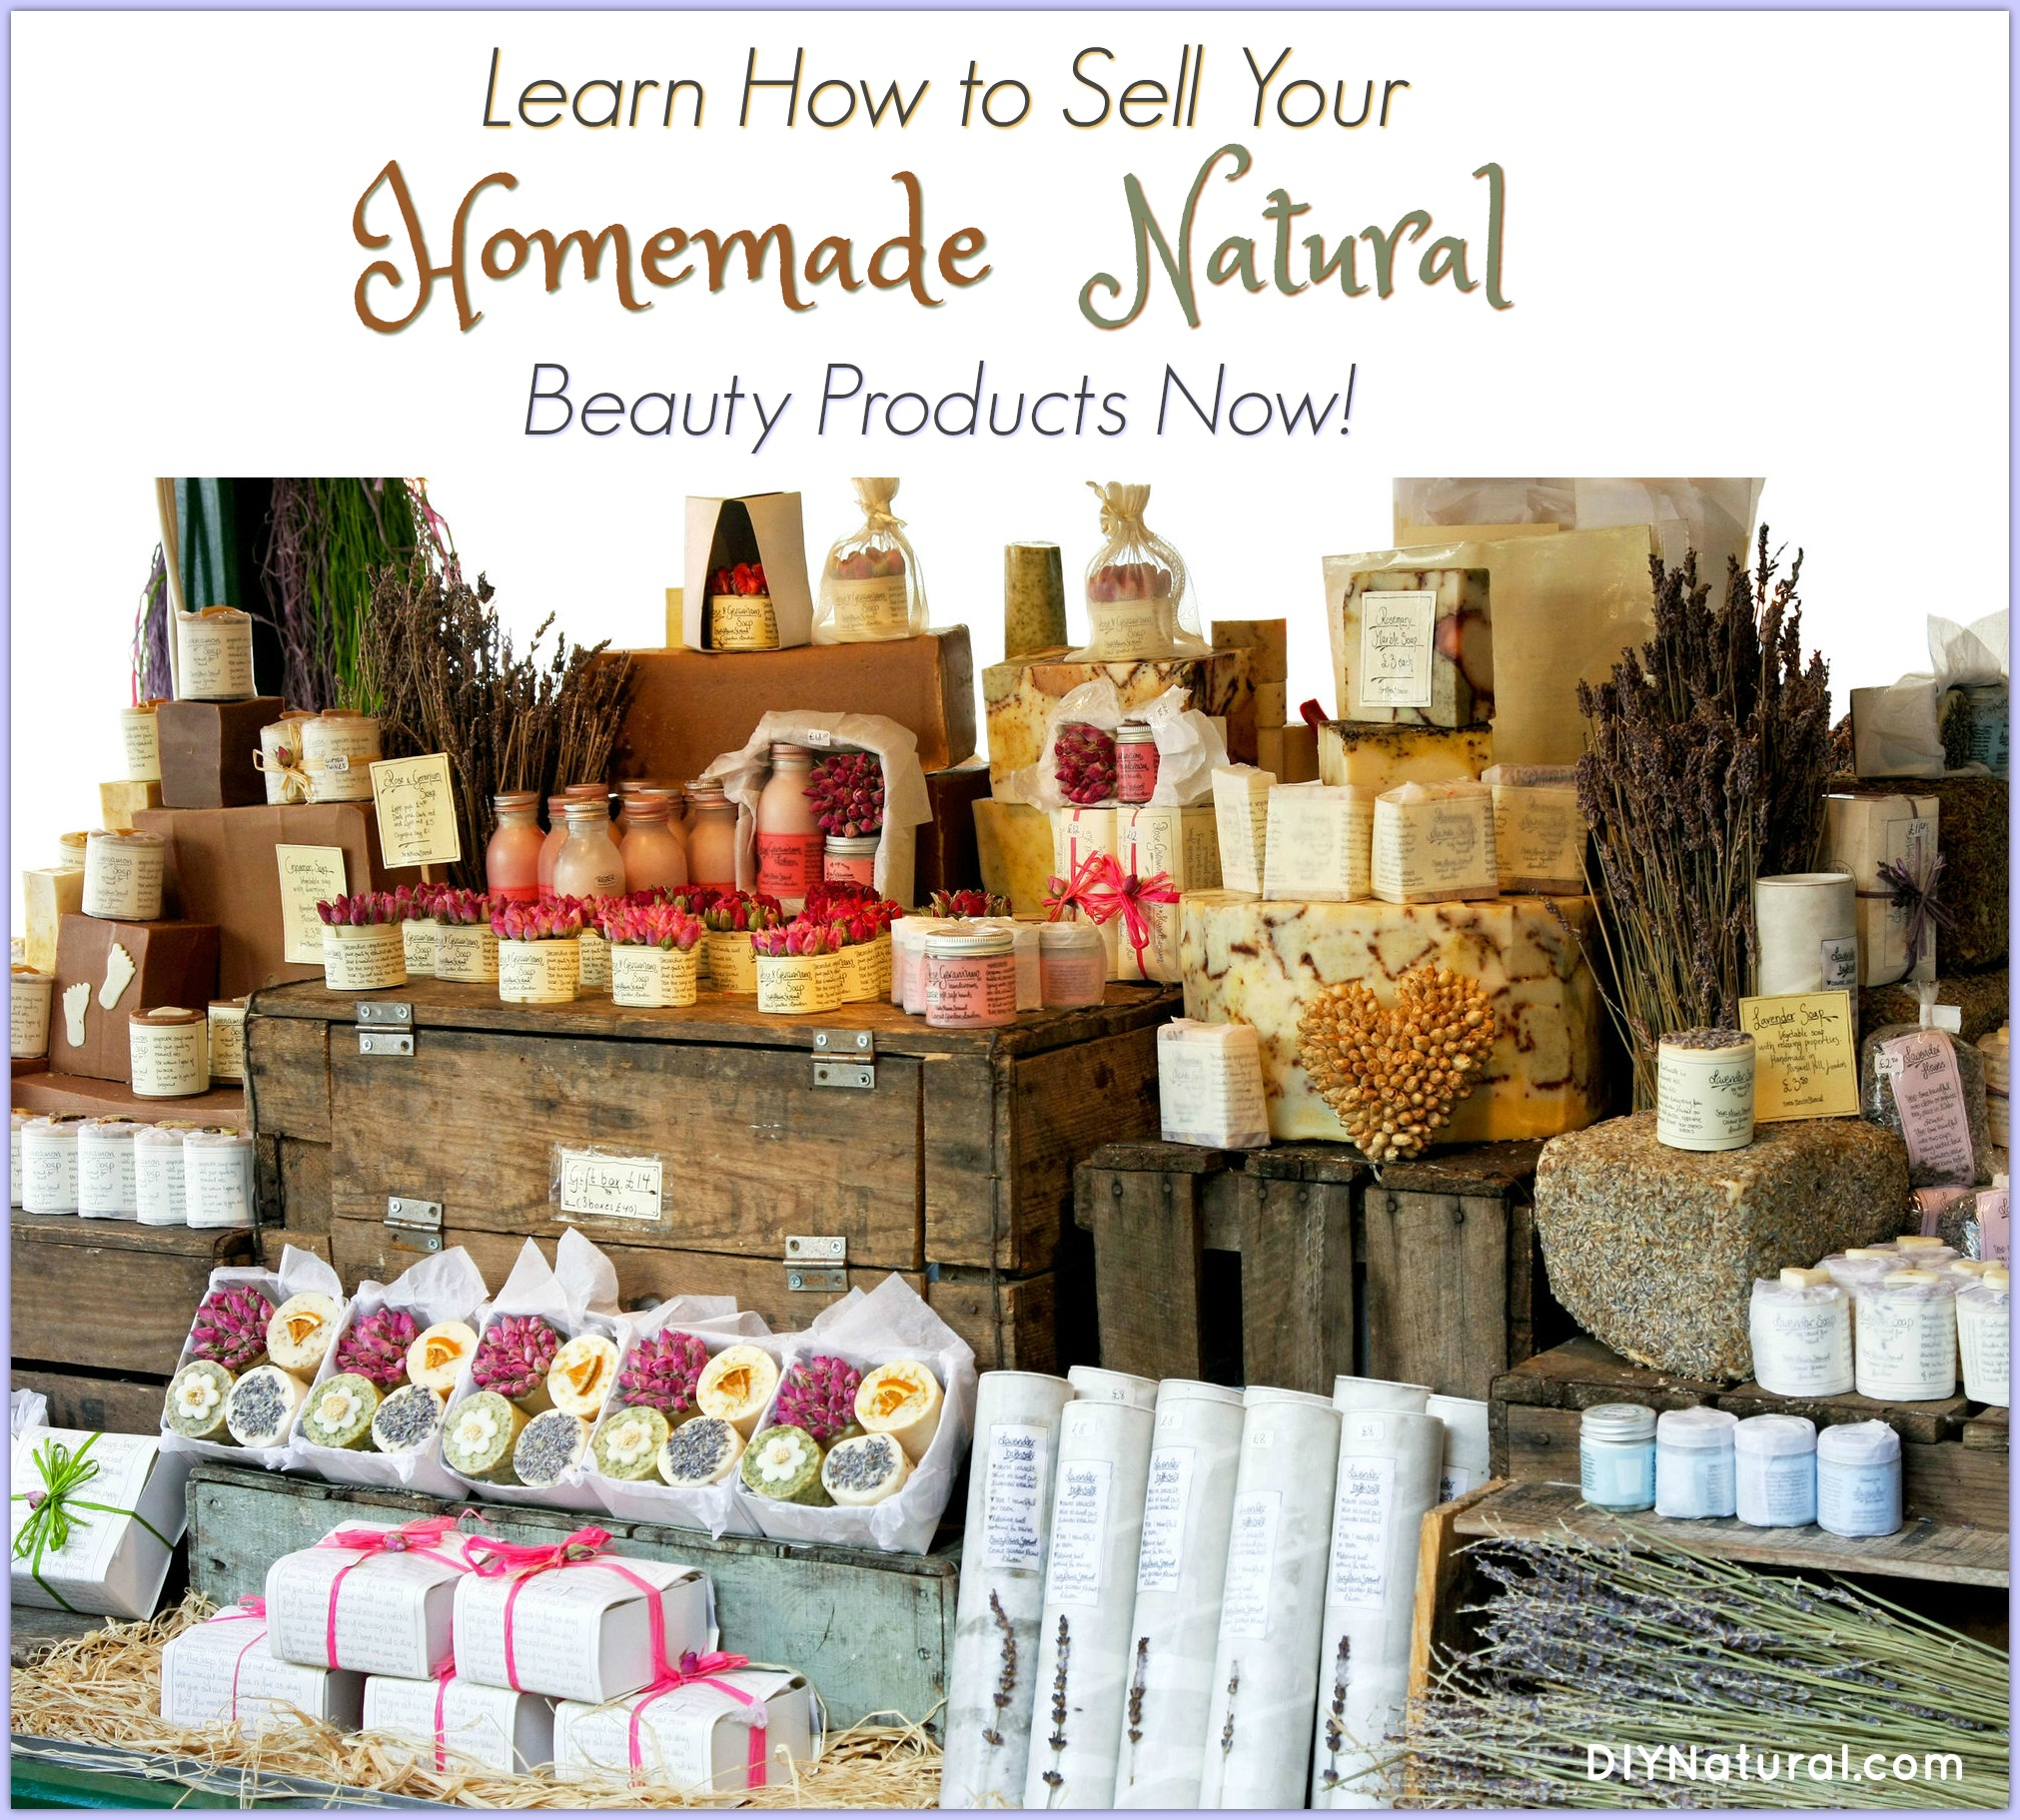 How to sell homemade products health and beauty edition for A bathroom item that starts with p